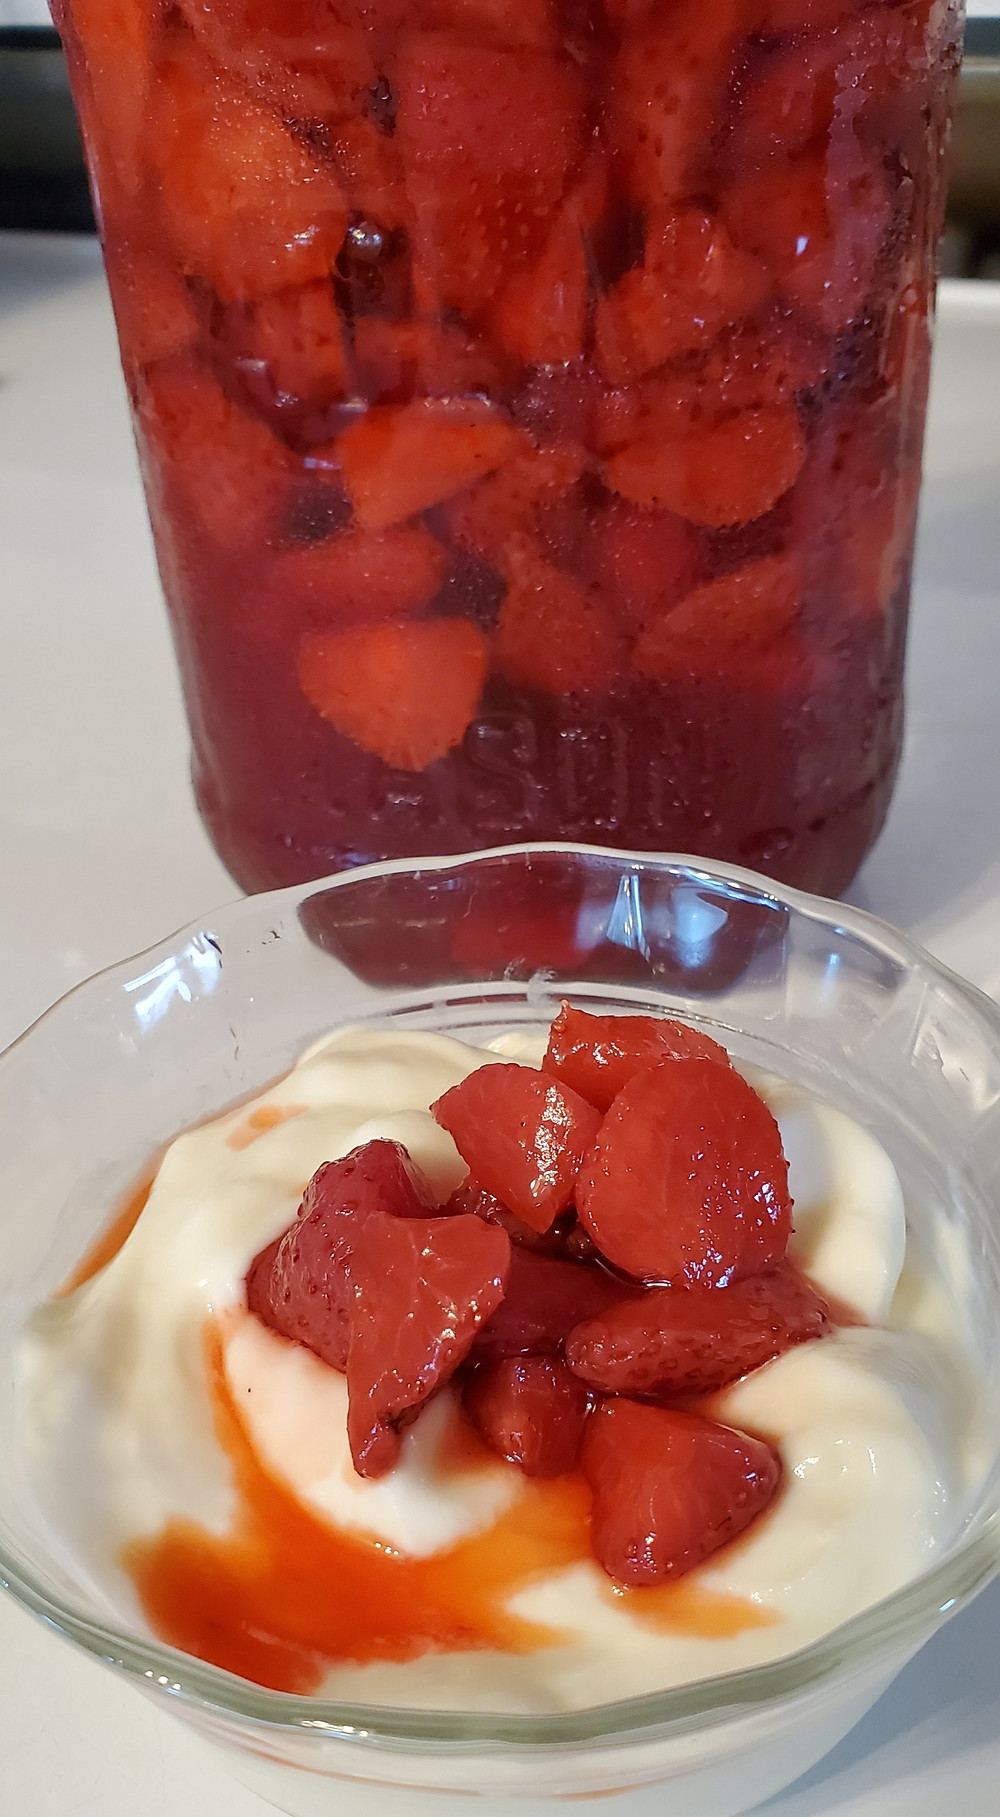 A bowl of yogurt sits on a stovetop. It is topped with a small amount of pickled strawberries. Behind the bowl is the jar of finished pickled berries. End photo ID.